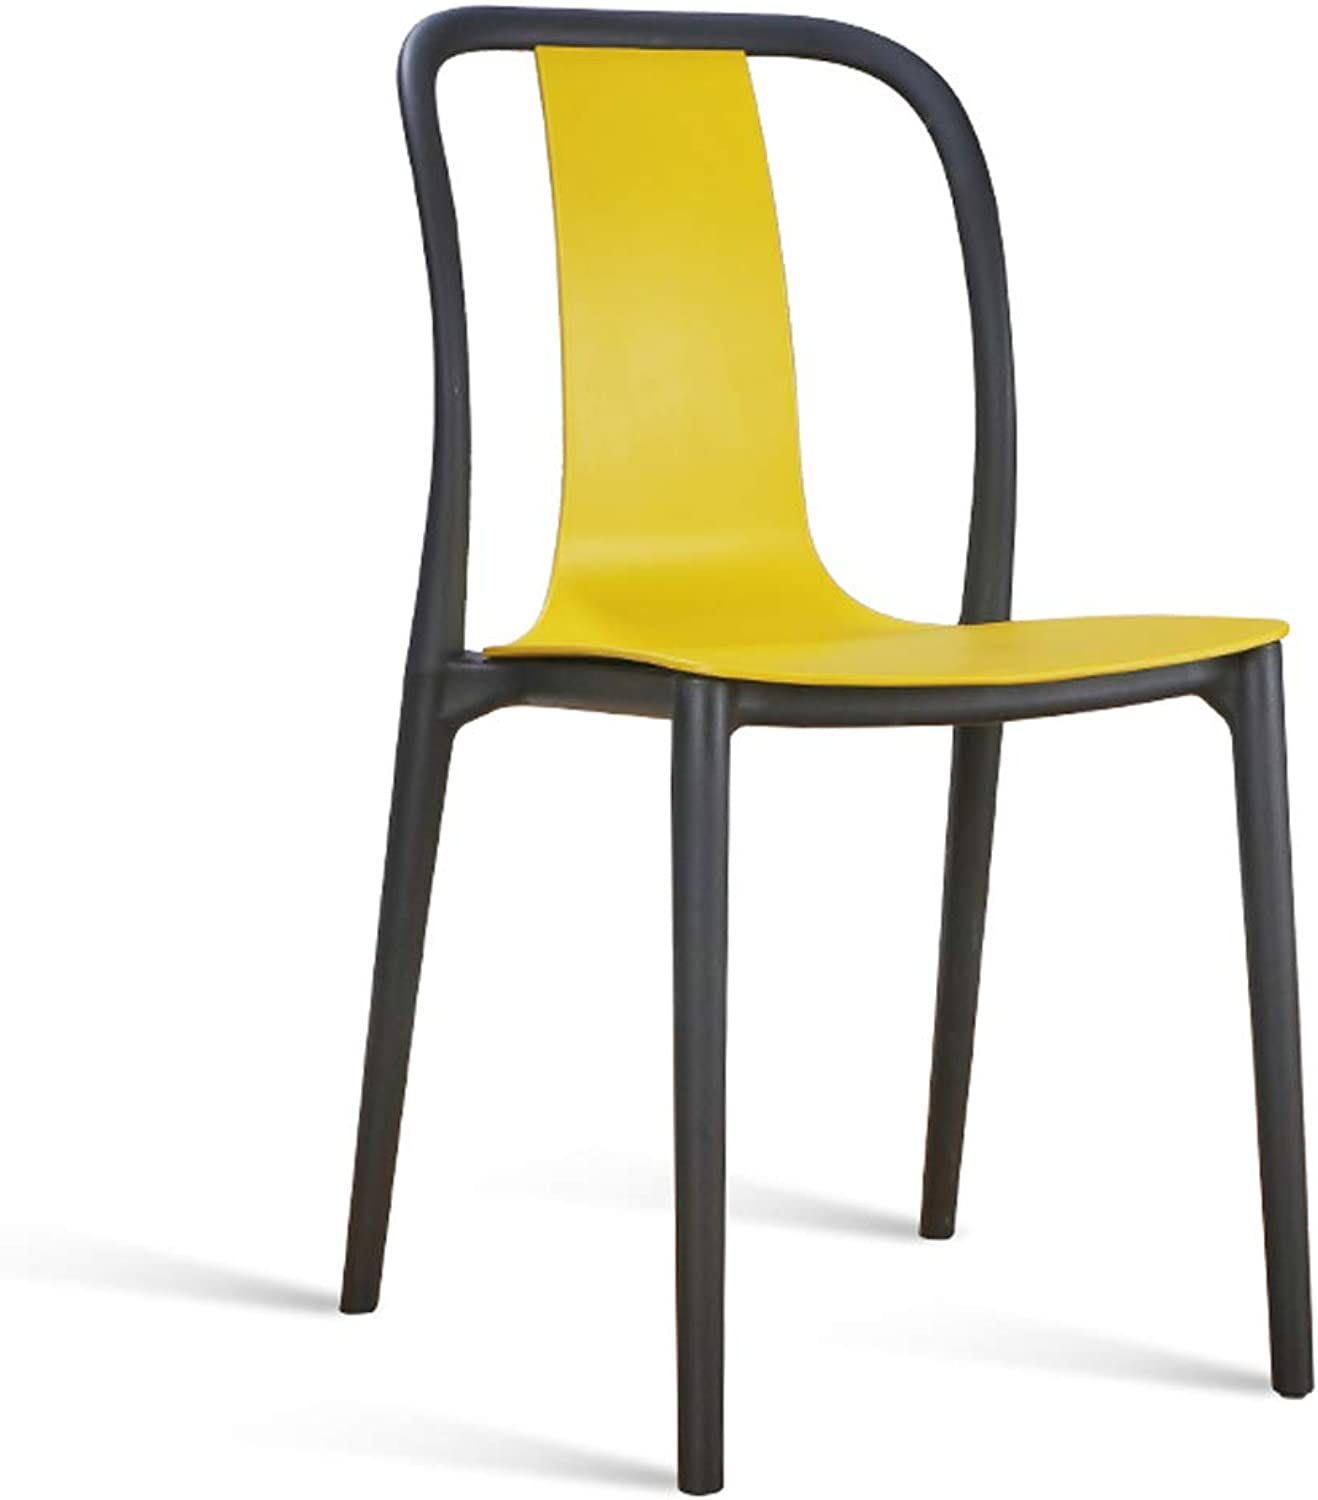 LRW Minimalist Modern BackChair, Family Dining Chair, Adult Fashion, Creative Stool, Cafe Chair, Yellow Chair.